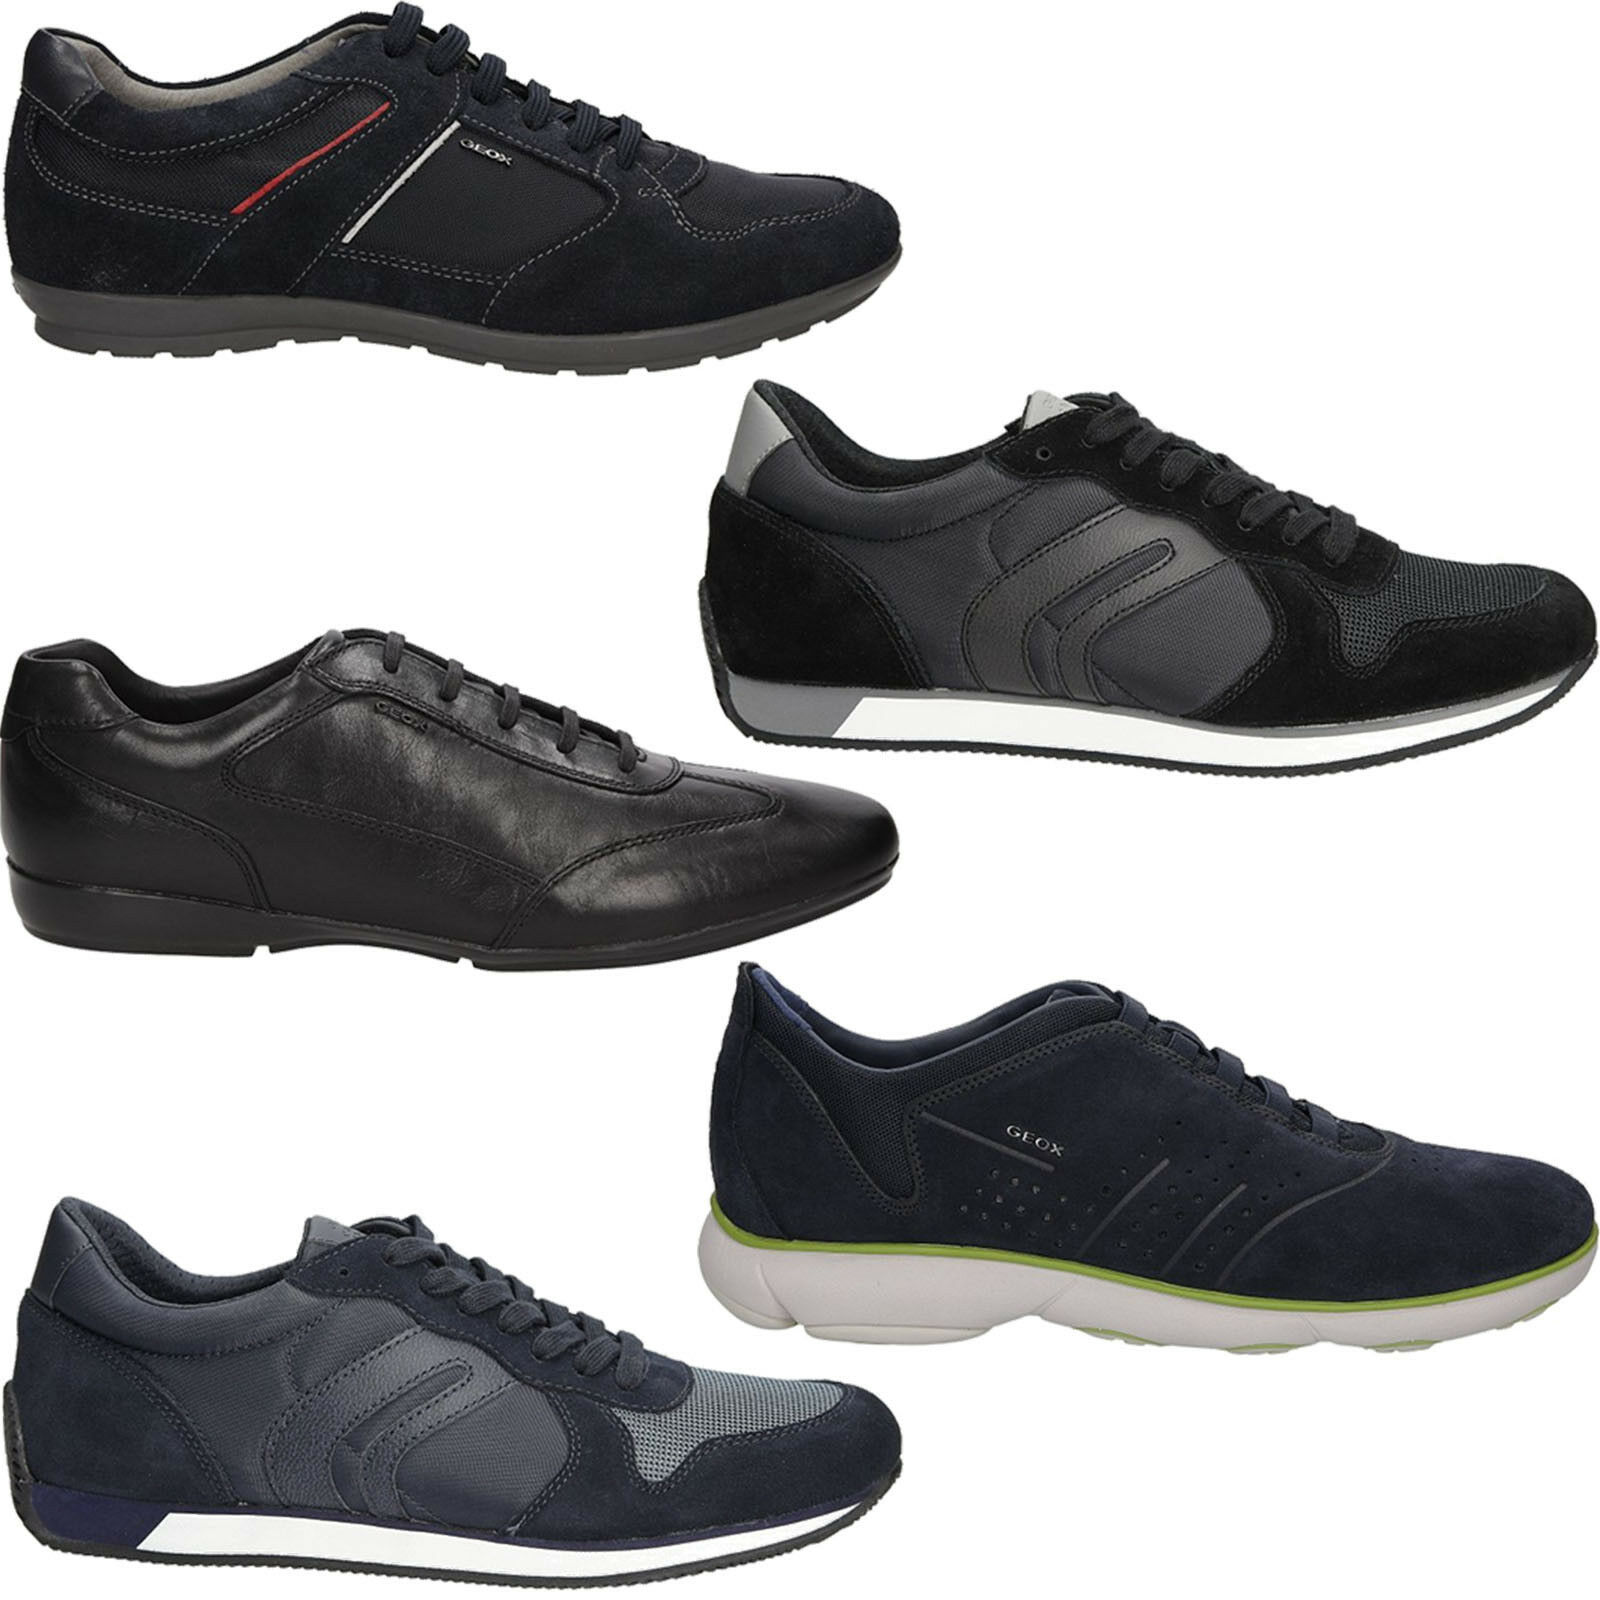 Hommes Chaussures De Sport GEOX Chaussures Chaussure Lacée Plat Confortable Taille 40-46 Neuf